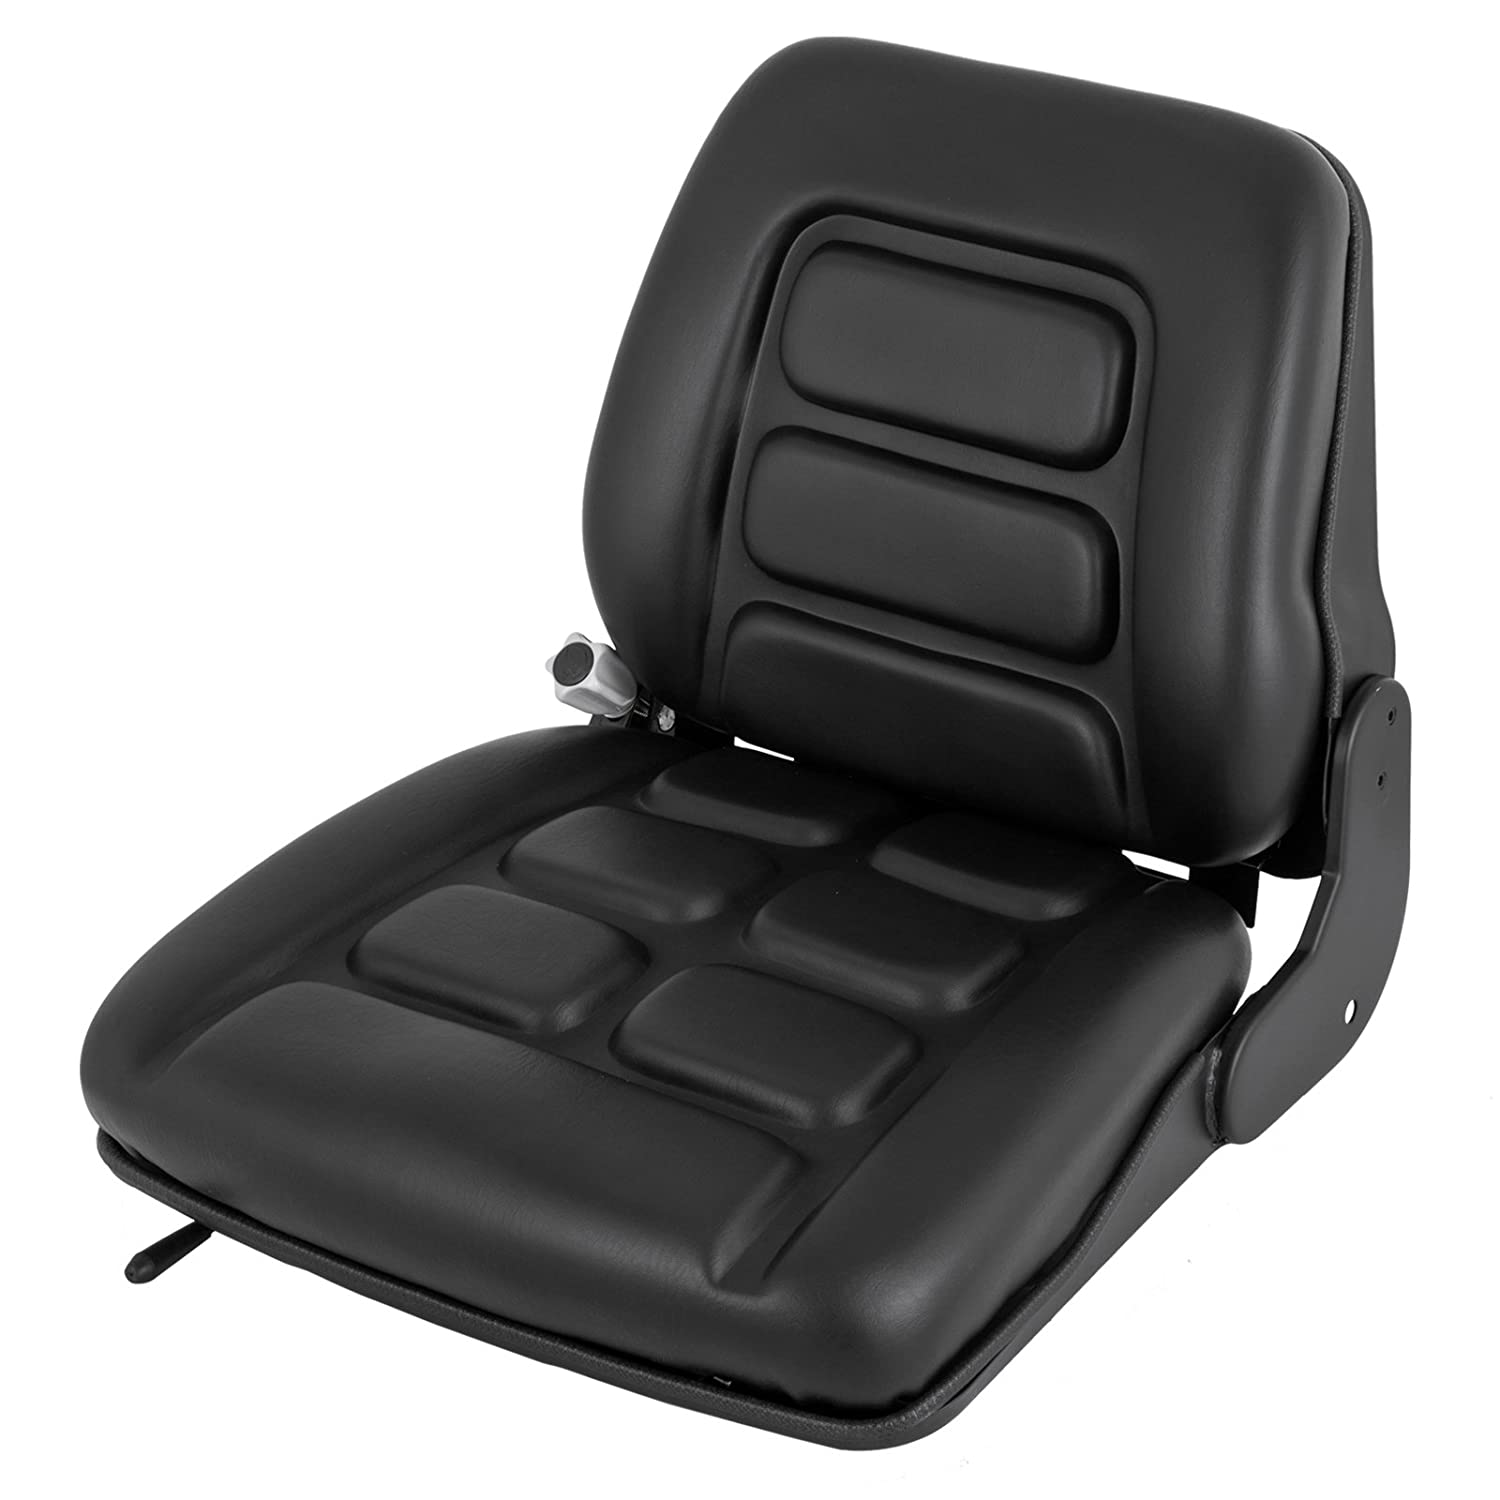 Amazon.com: Mophorn Universal Forklift Seat TOYOTA Folding Vinyl Forklift  Seat Suspension Seat w/Switch Fits Clark Cat Hyster Ysle TOYOTA: Home  Improvement